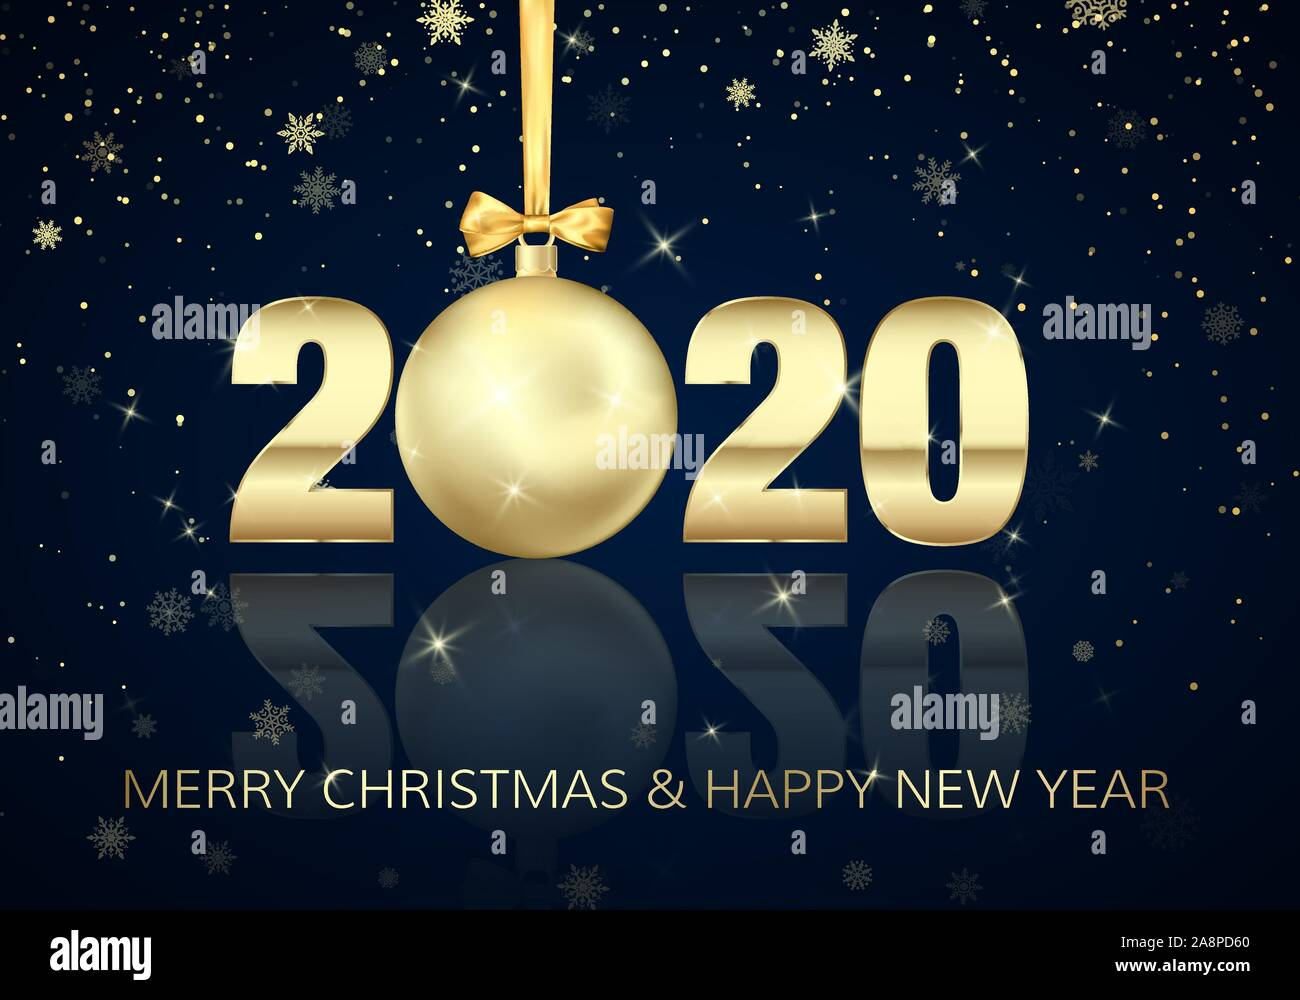 happy new year and merry christmas poster with greeting text golden christmas ball instead of zero in 2020 holiday decoration element for banner or stock vector image art alamy https www alamy com happy new year and merry christmas poster with greeting text golden christmas ball instead of zero in 2020 holiday decoration element for banner or image332407544 html